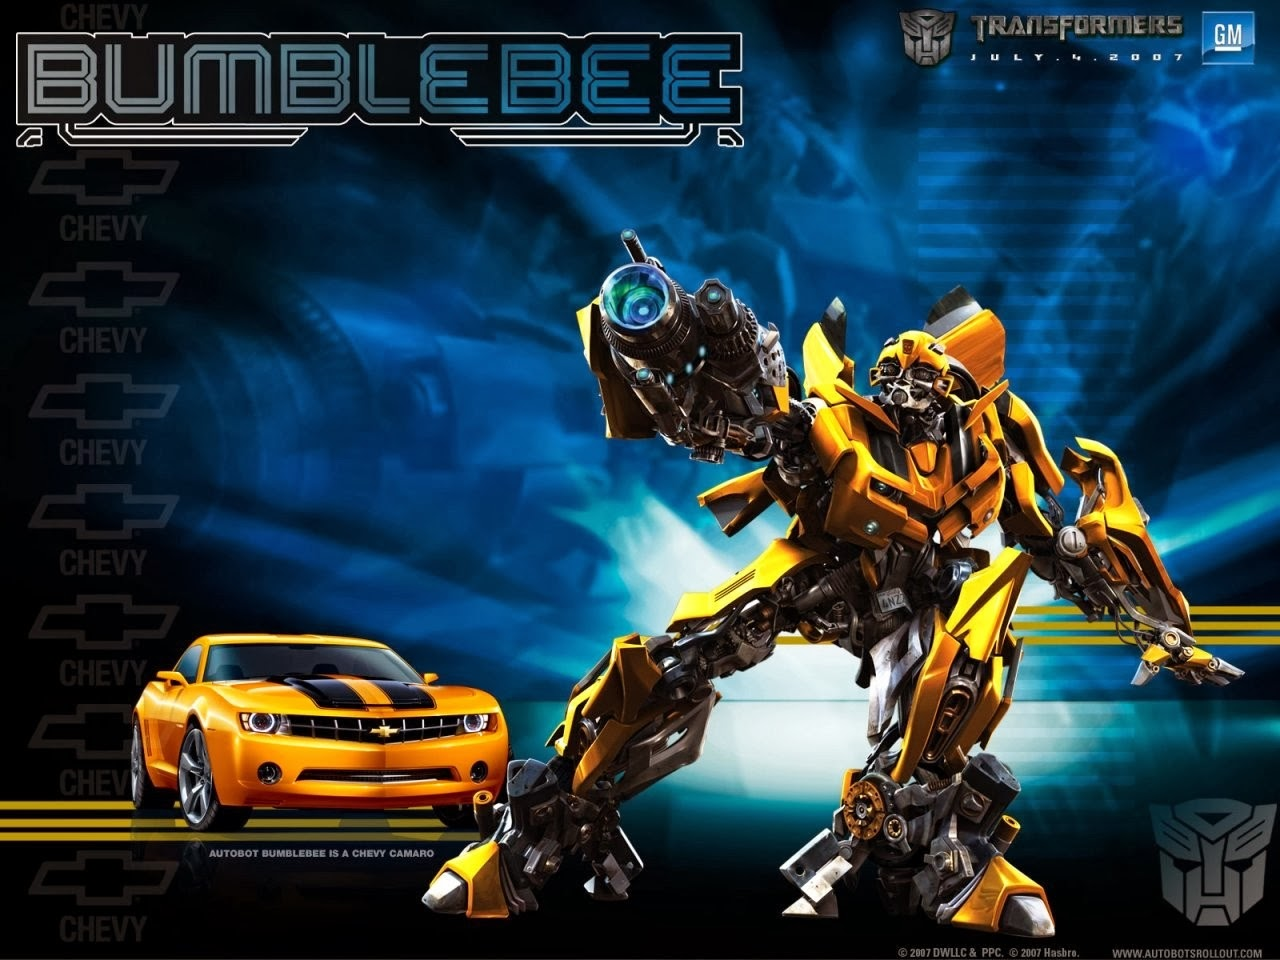 transformers wallpaper bumblebee  Wallpaper Bumblebee Transformers - beauty walpaper